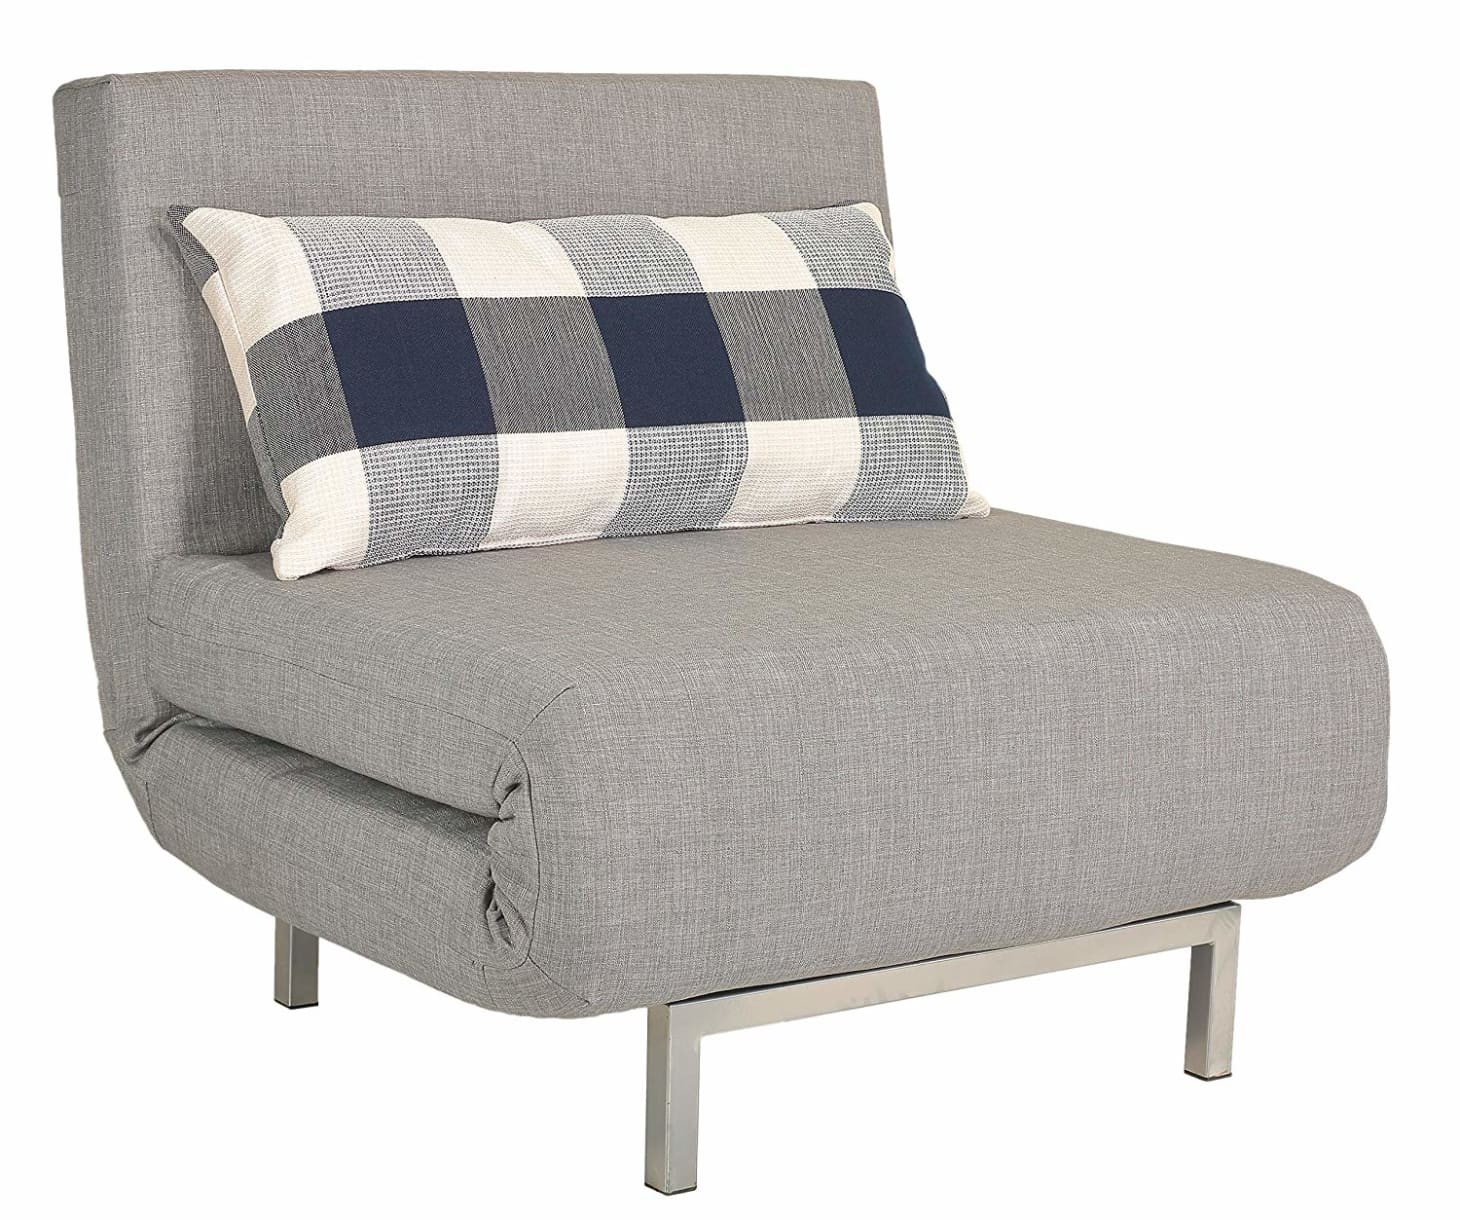 Affordable Sleeper Chairs And Ottomans Apartment Therapy